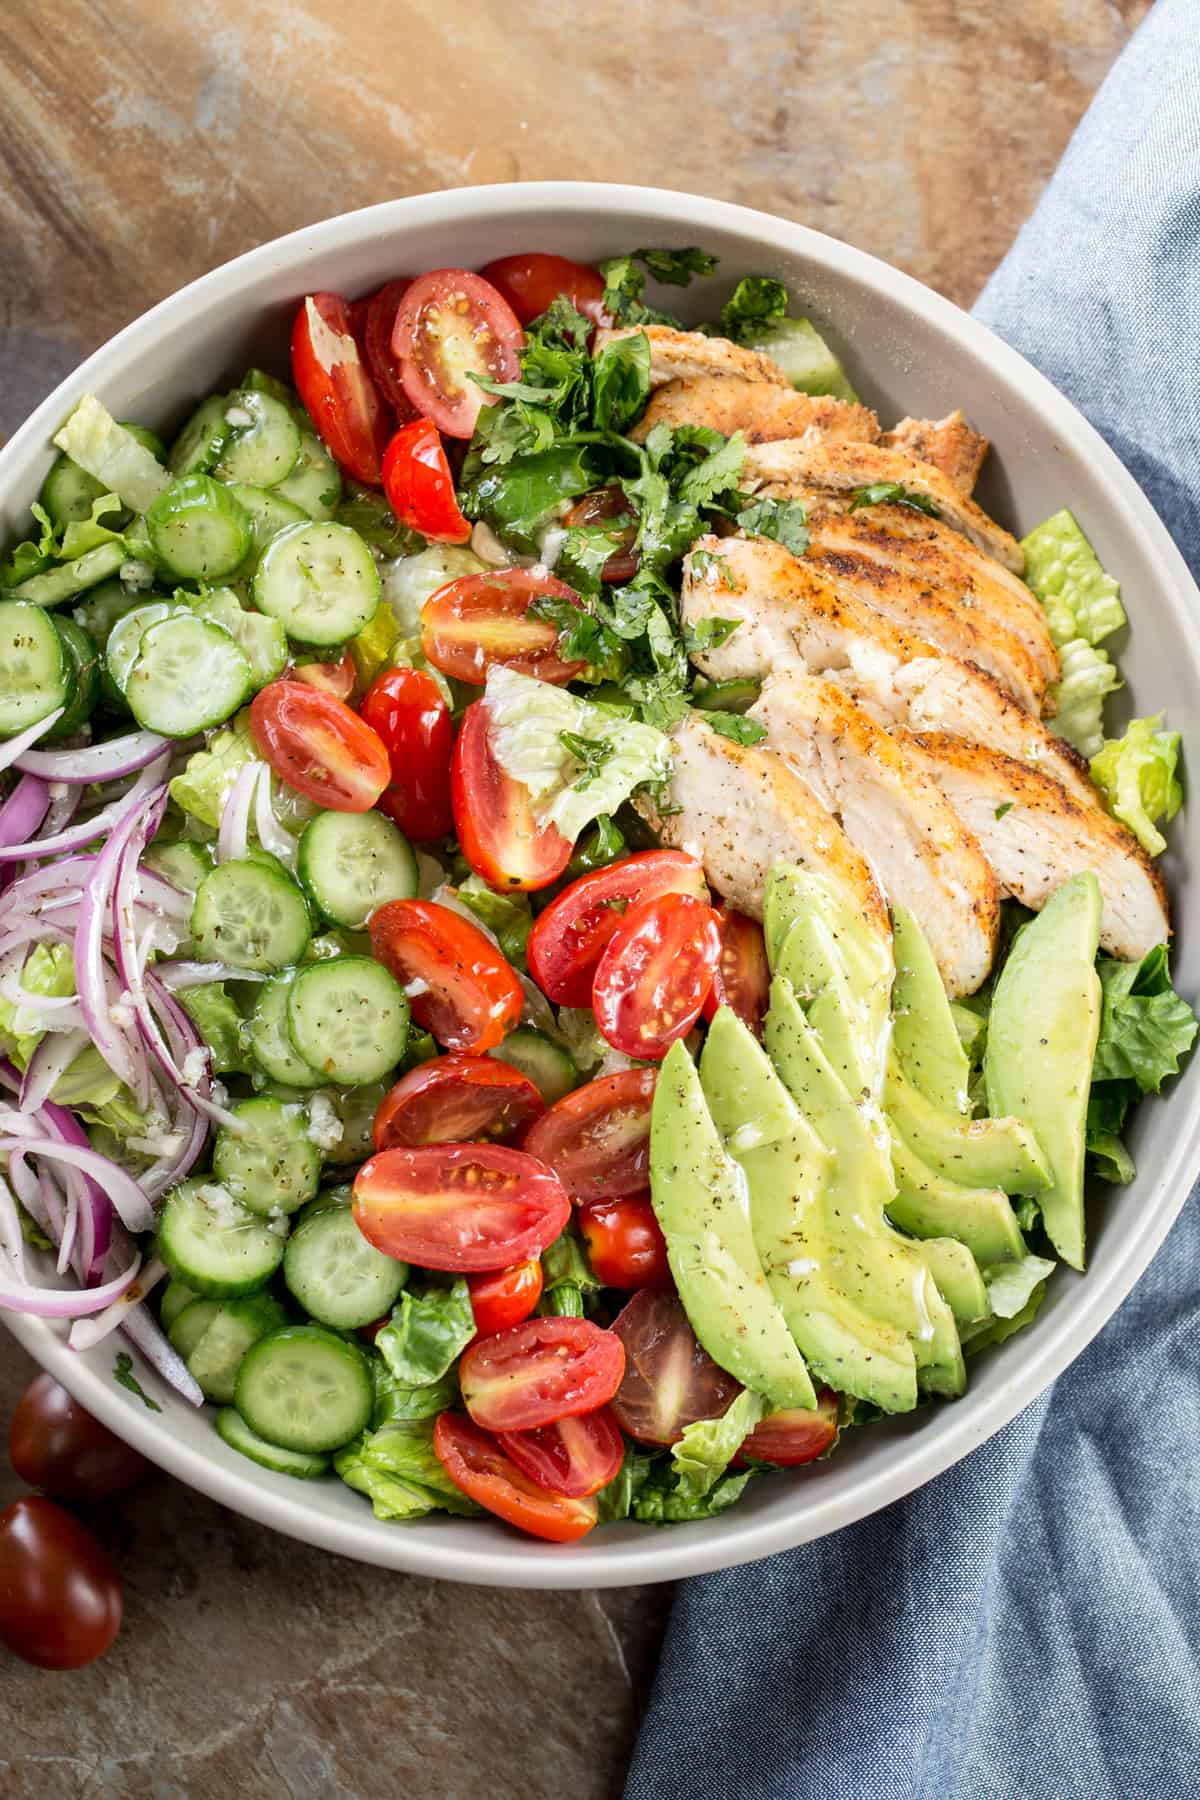 Romaine avocado chicken salad recipe topped with homemade oil and lemon dressing.